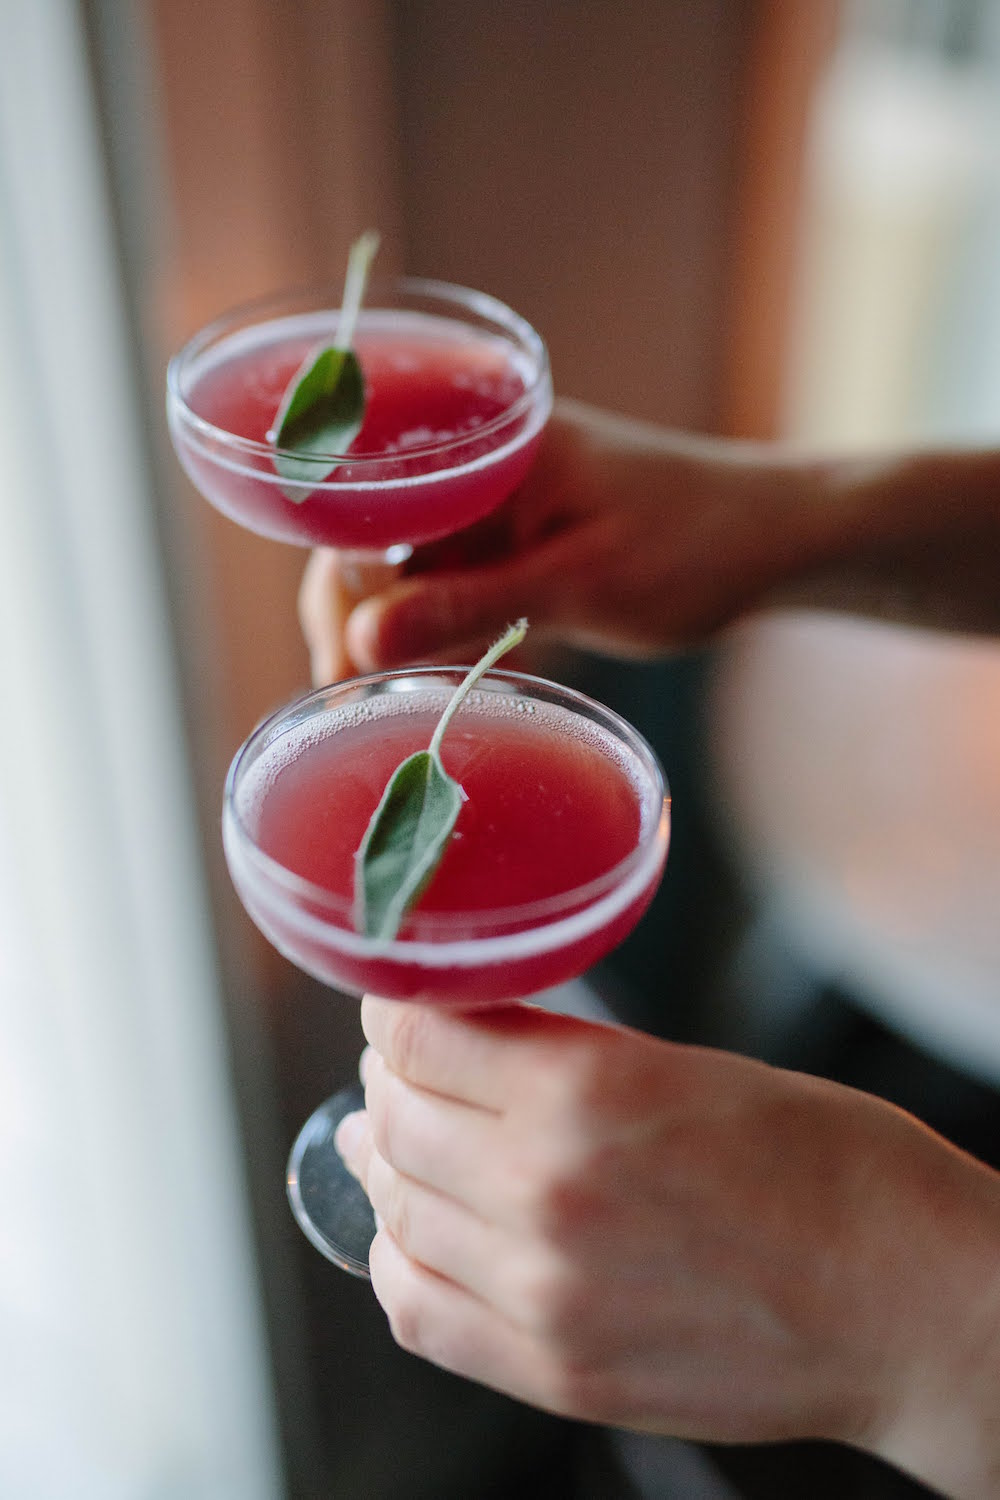 COCKTAIL PARTY - an intimate cocktail experience